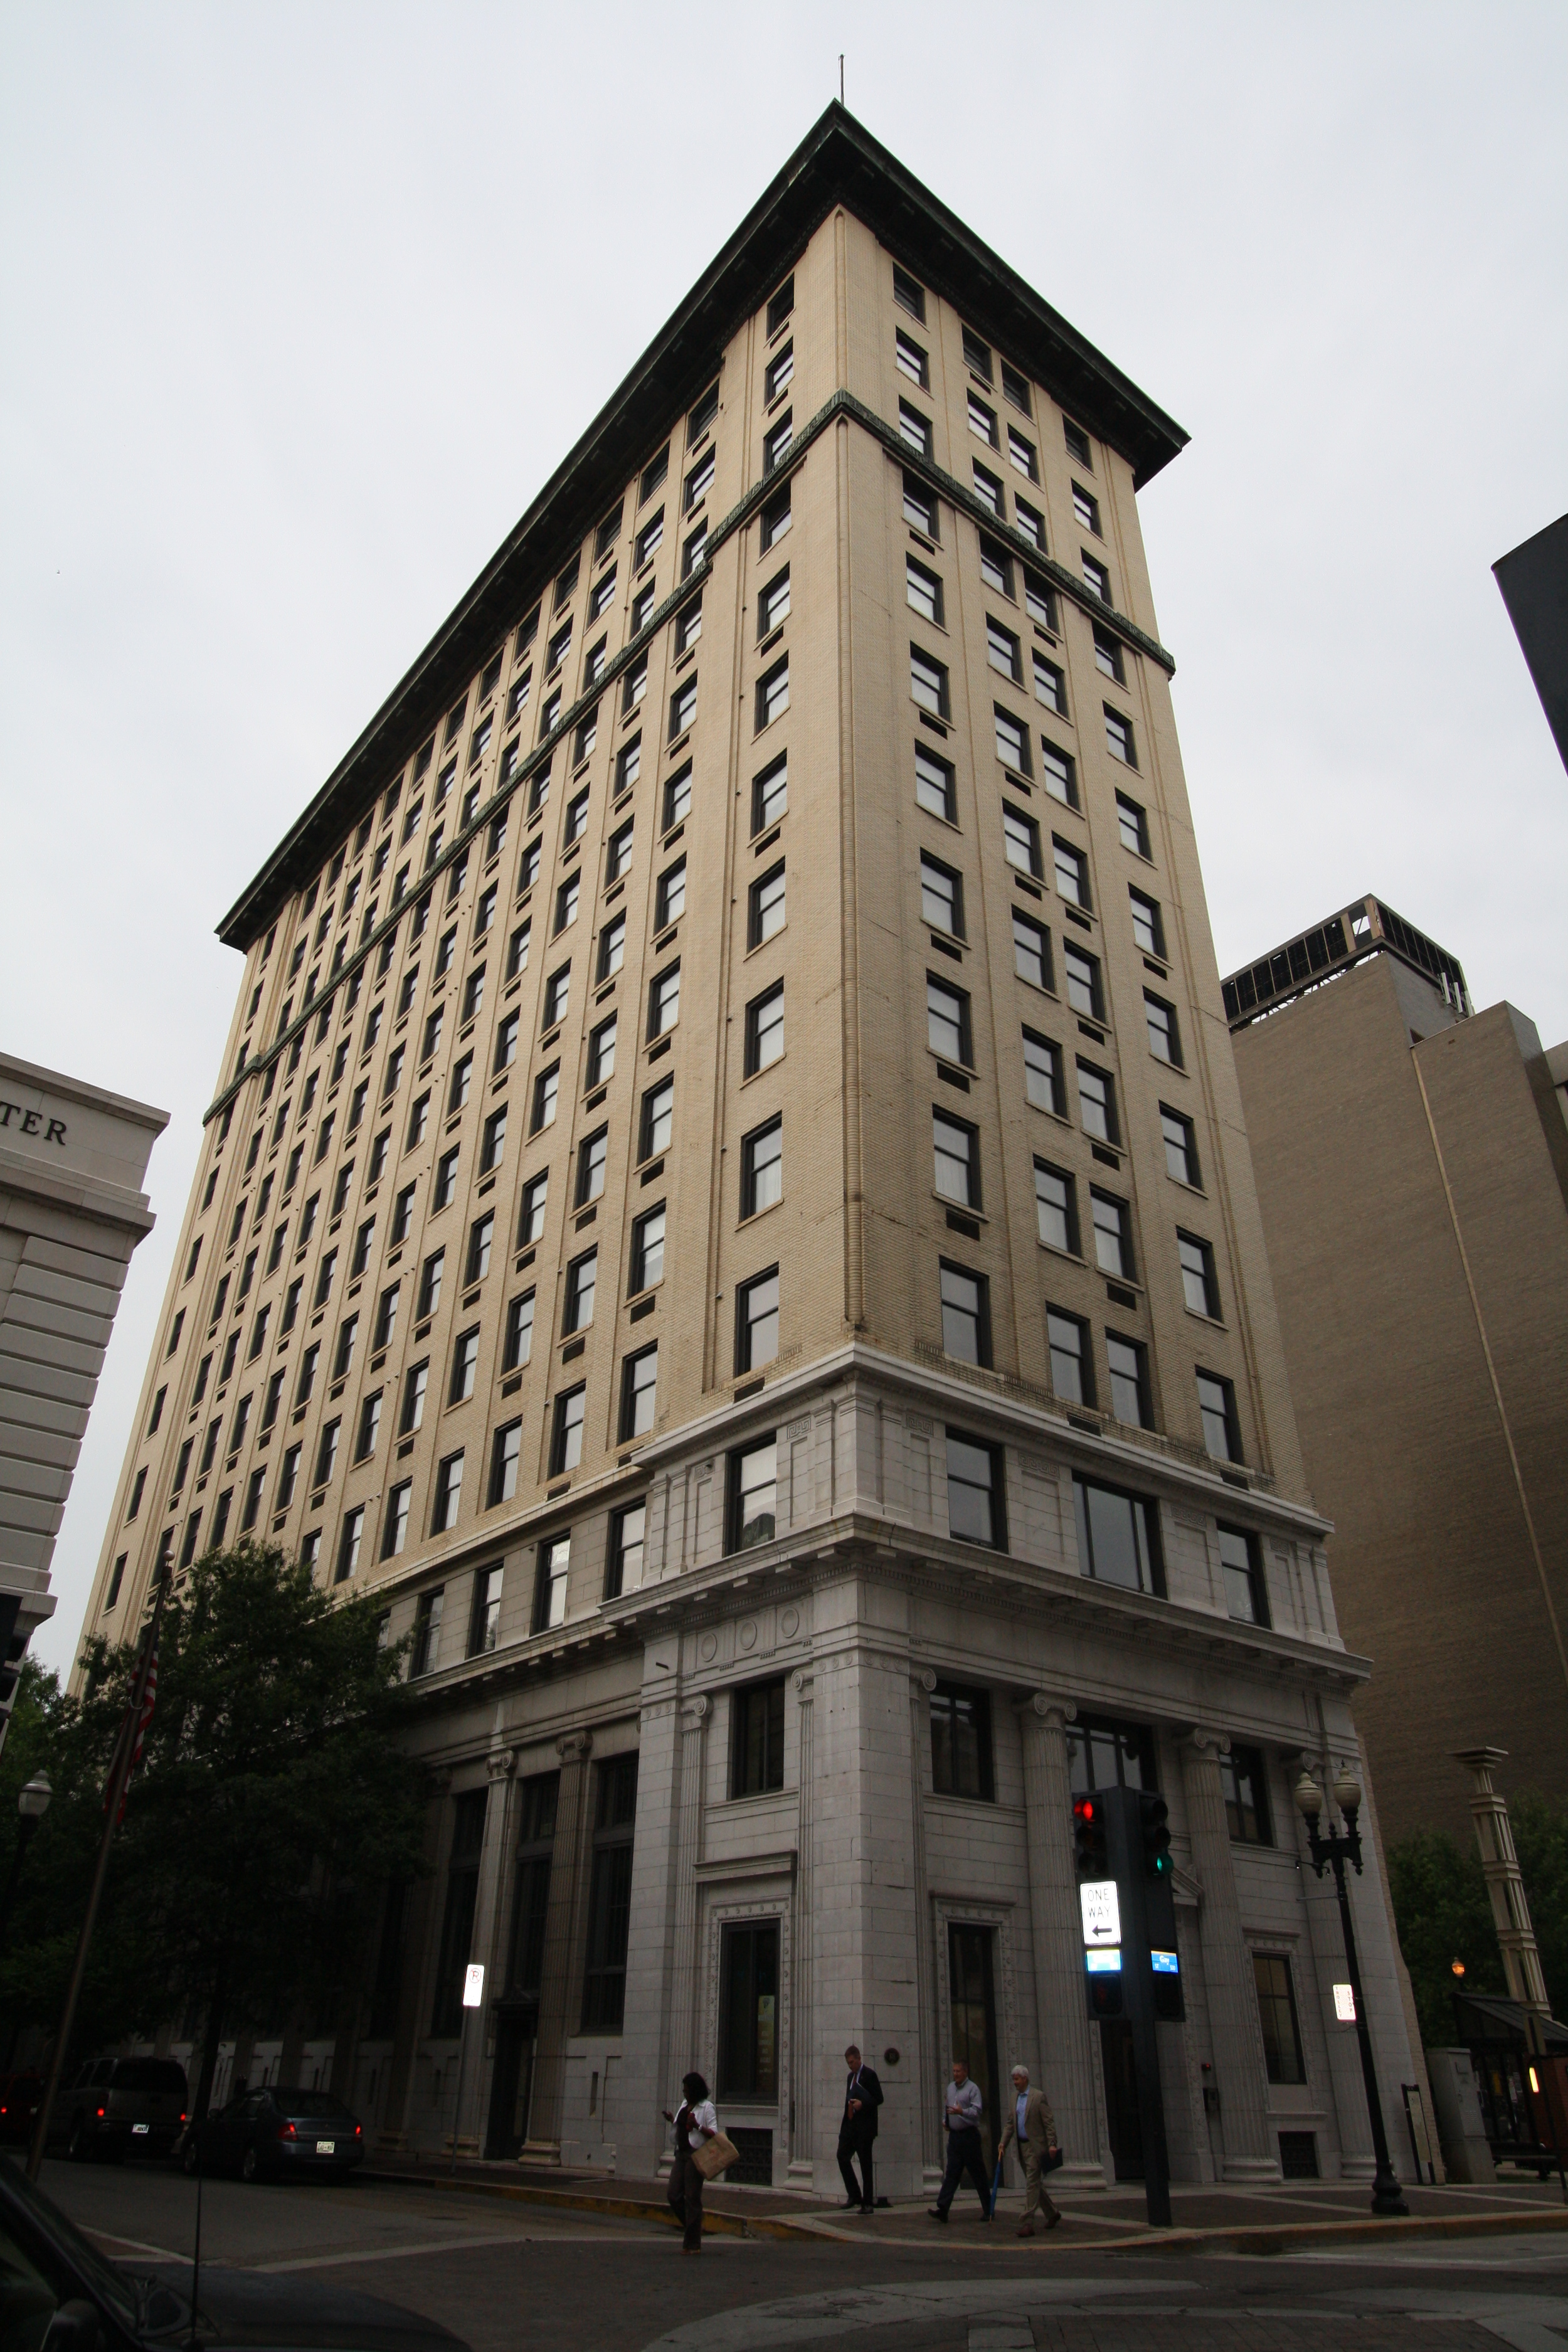 The Holston - Knoxville, TN - Built in 1912 - 15 Stories - Neo-Classical Style - Residential/Condo/Restaurant Use